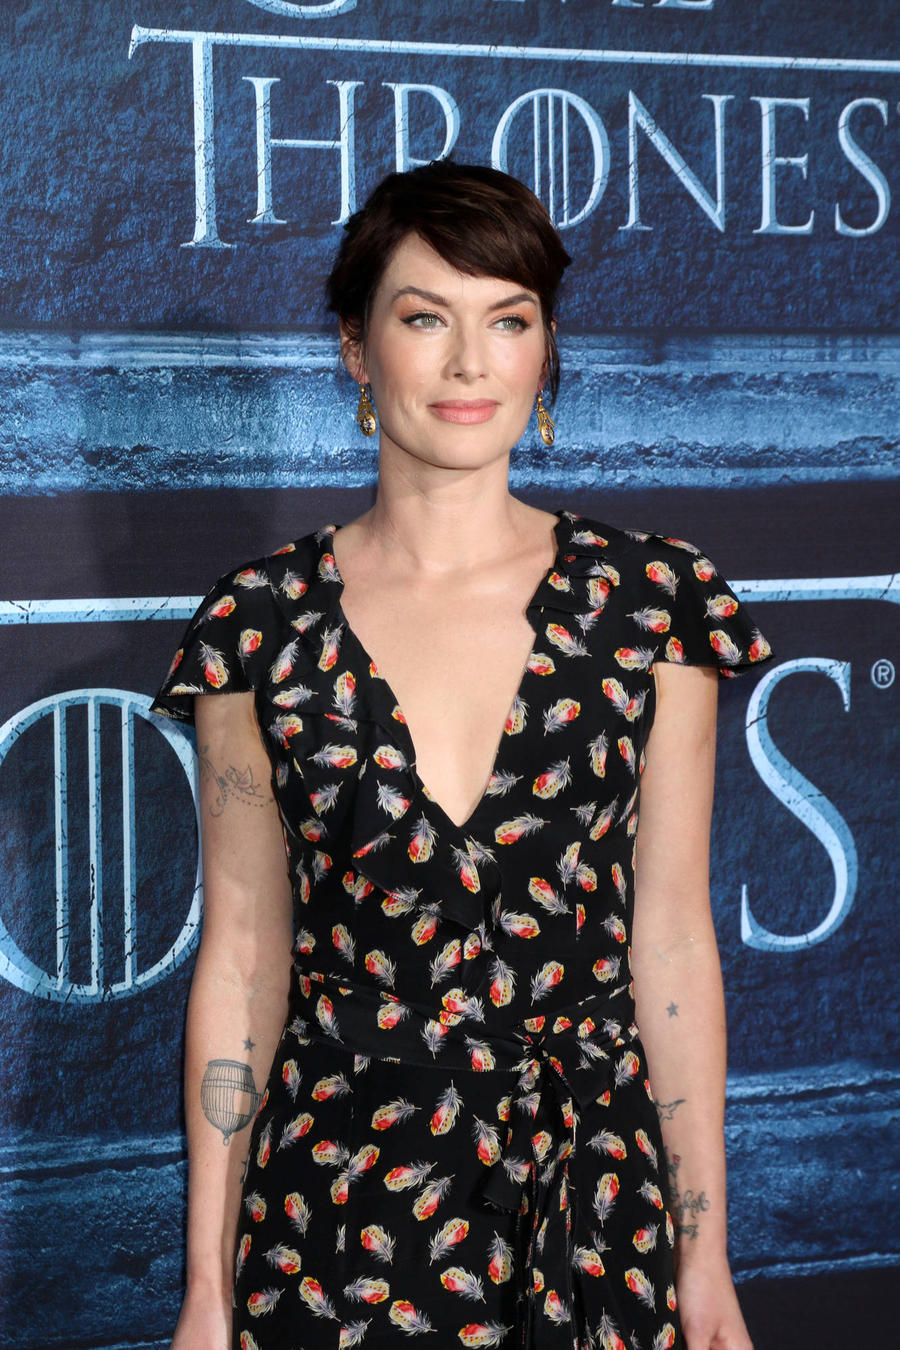 Lena Headey Submits Letter From Tv Show Producer To Aid Custody Battle